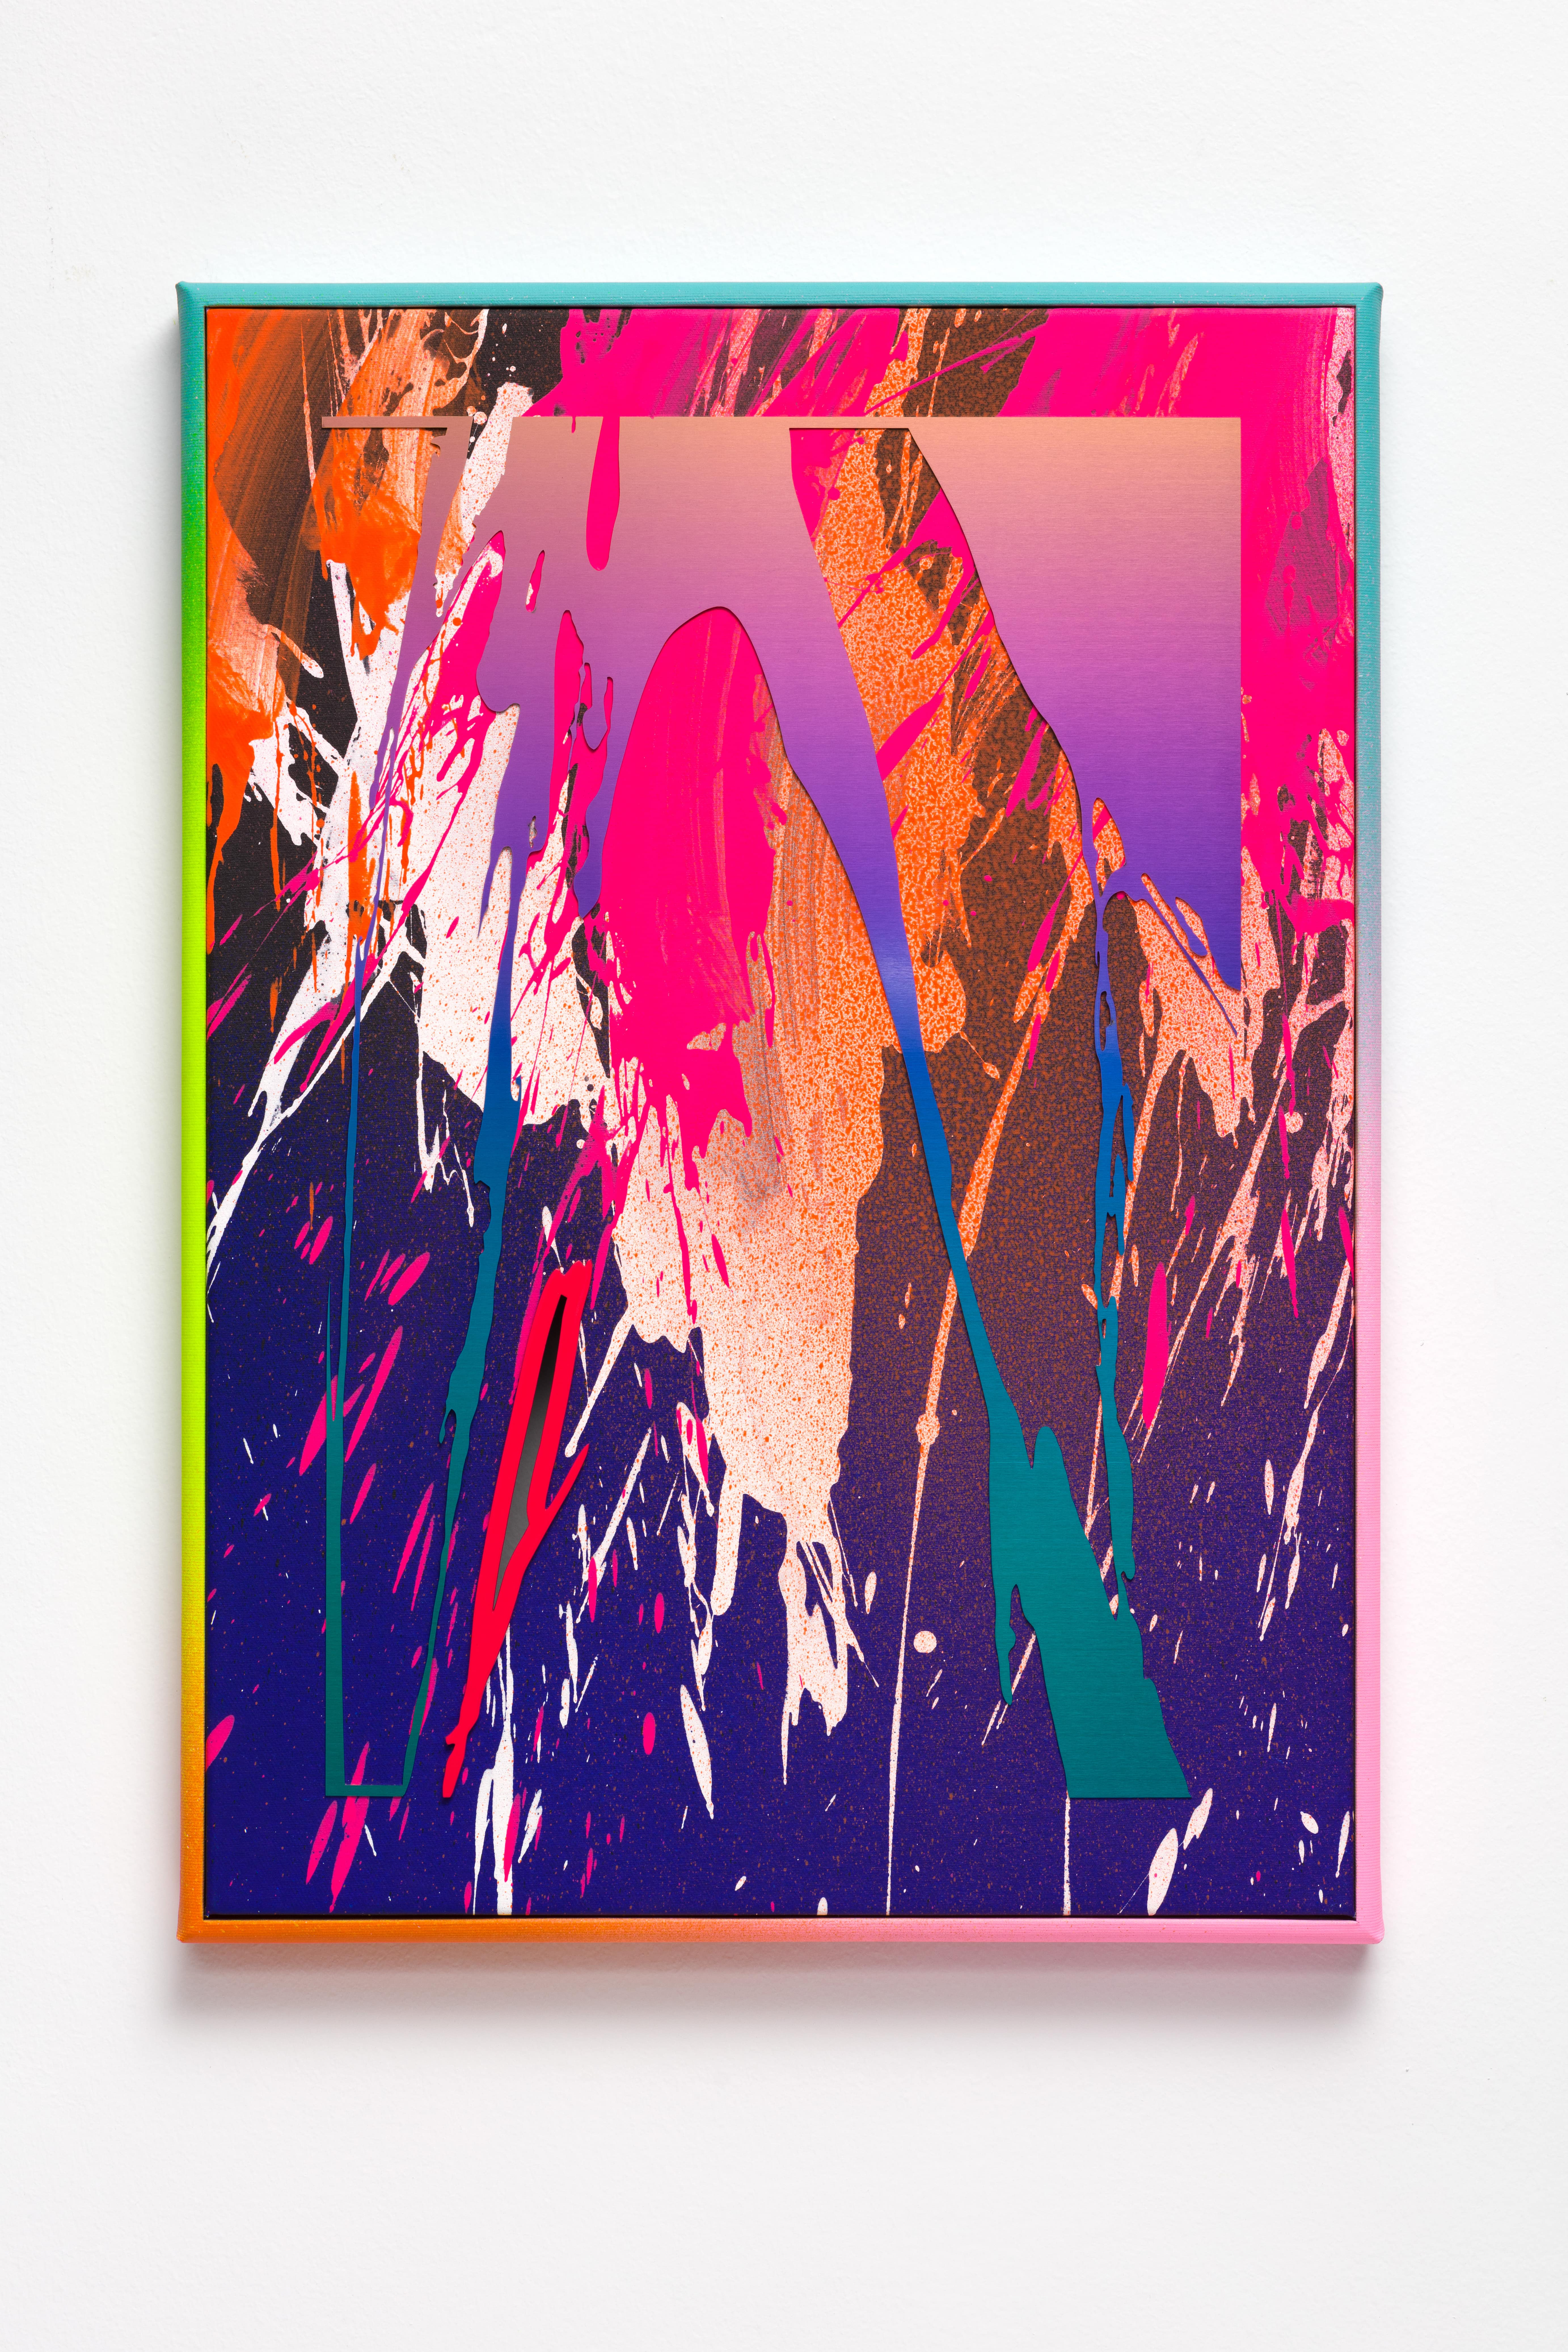 NemesM_Nothing-Without-05_2021_72x52cm_PVD-coated-stainless-steel-powder-coated-stainless-steel-acrylic-canvas-wood-min